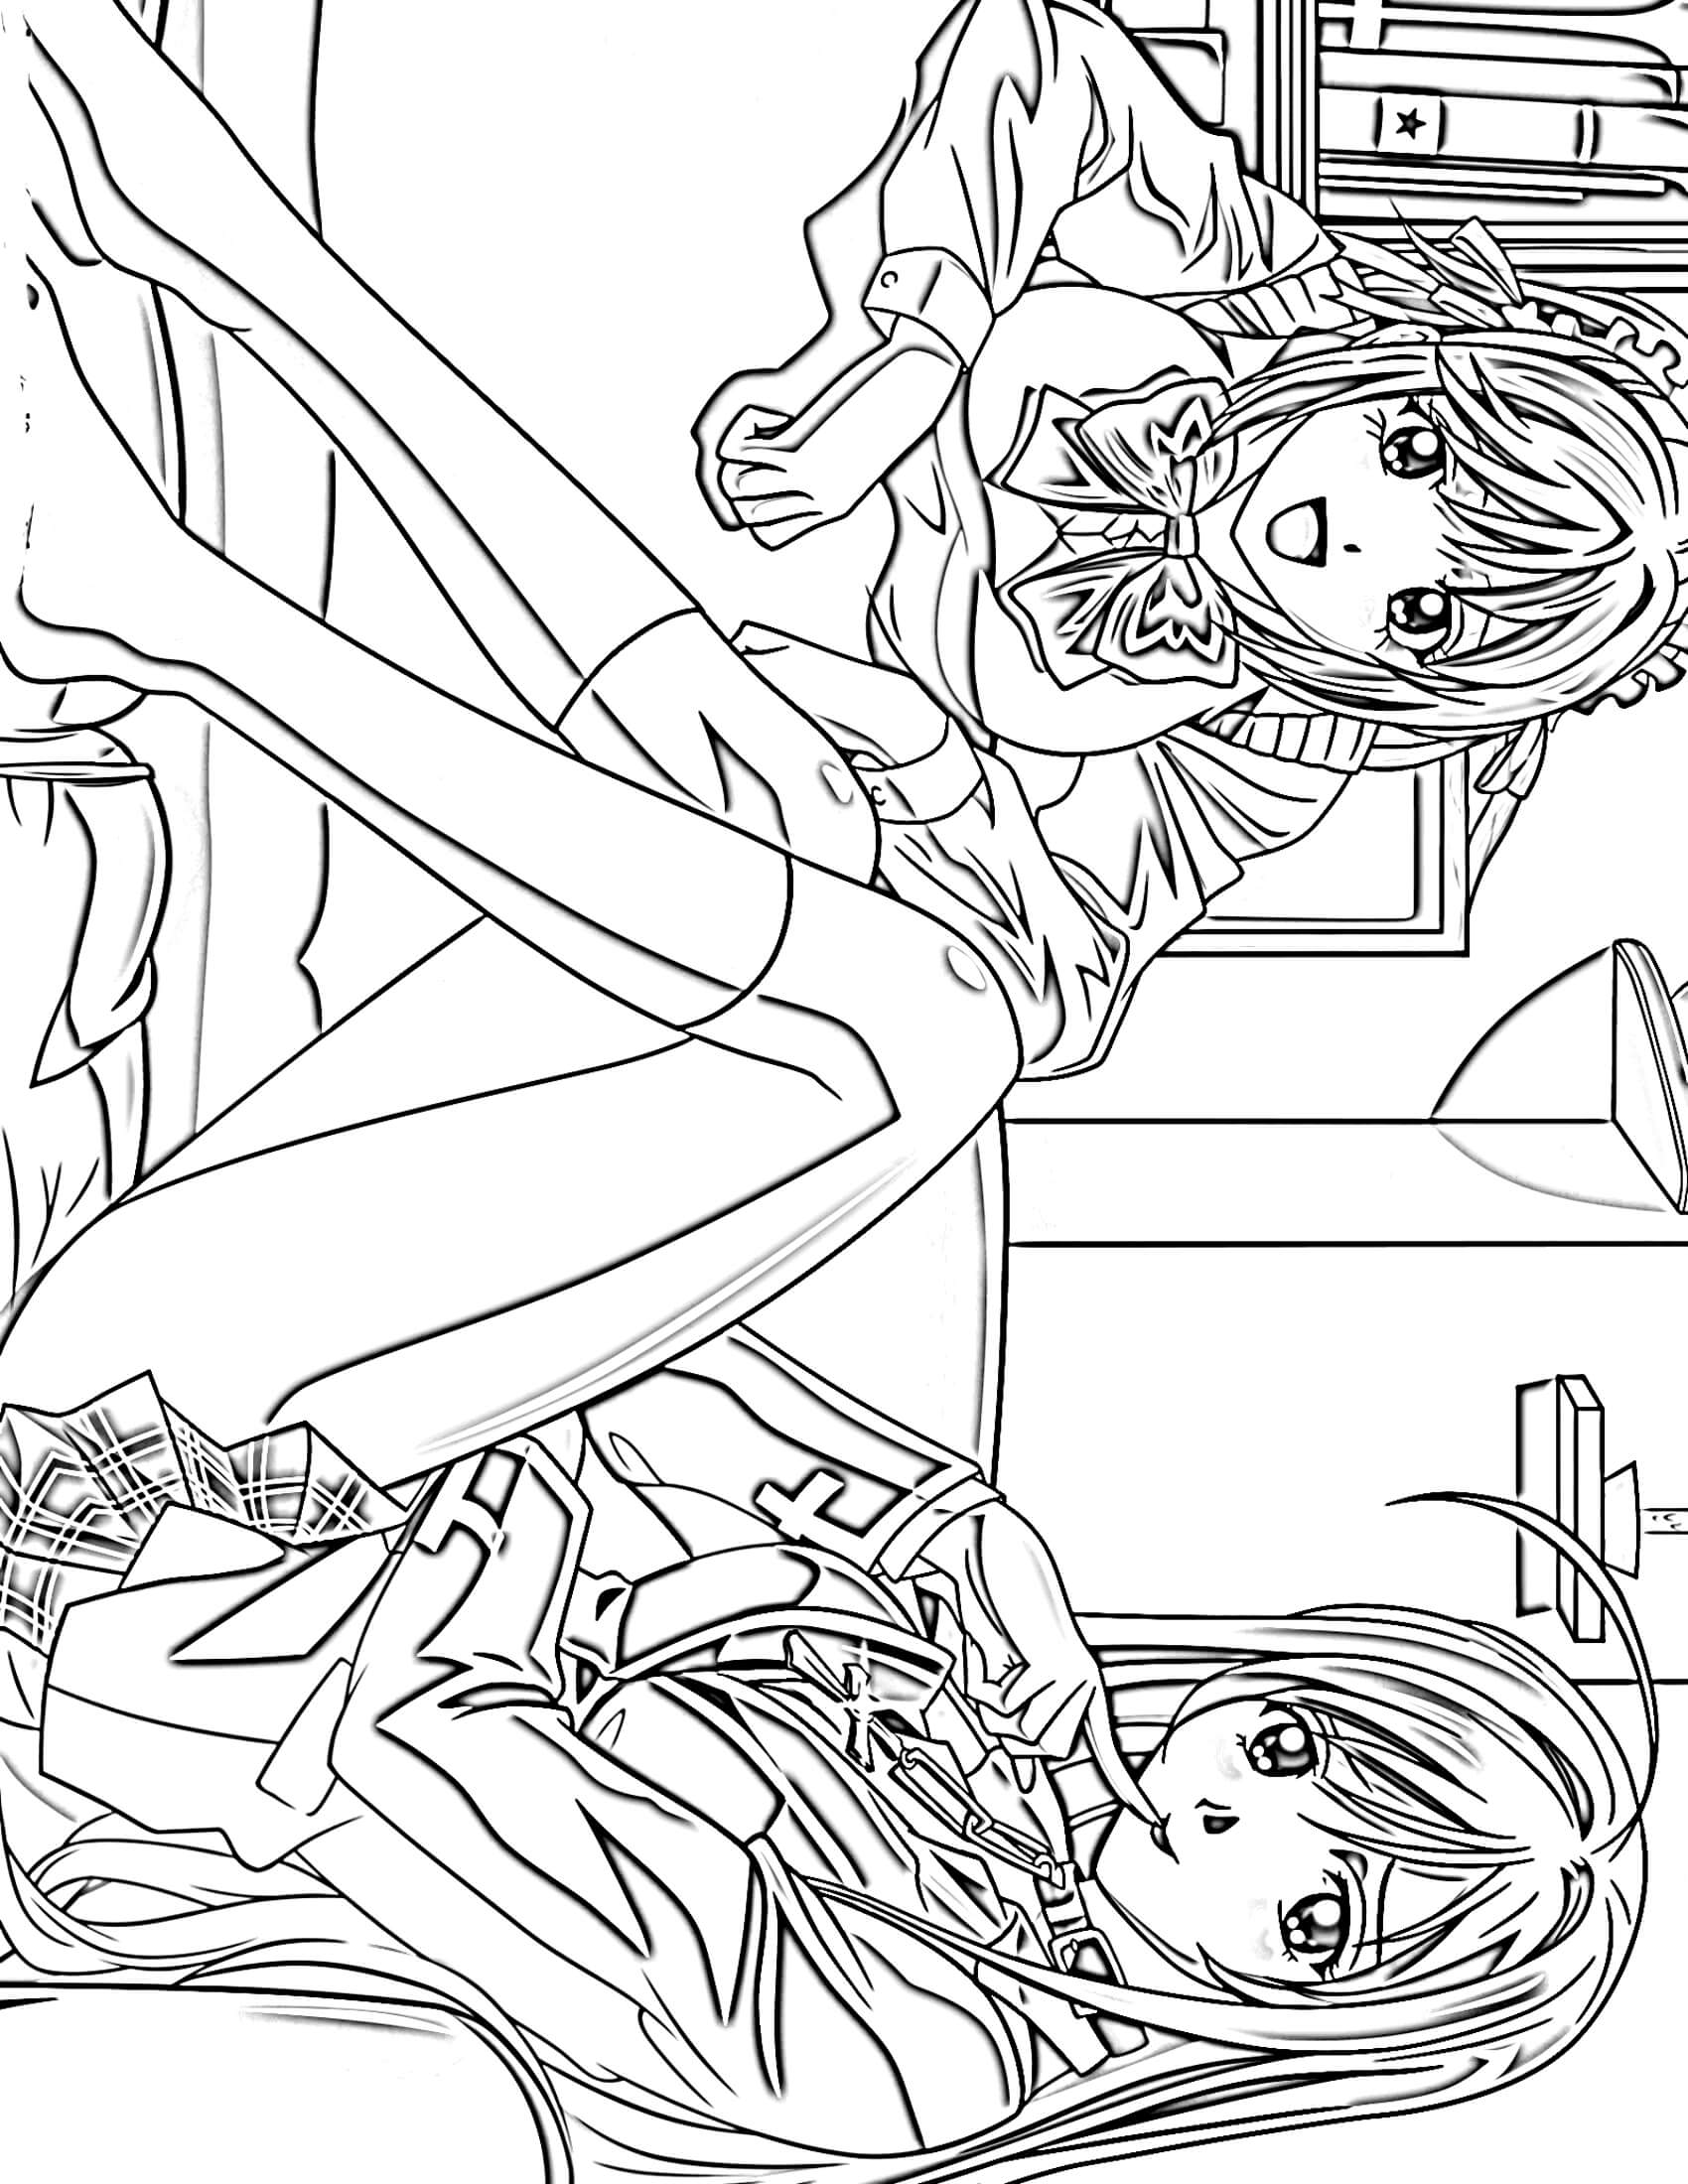 anime coloring pictures anime girl coloring page coloring pages for kids coloring anime pictures